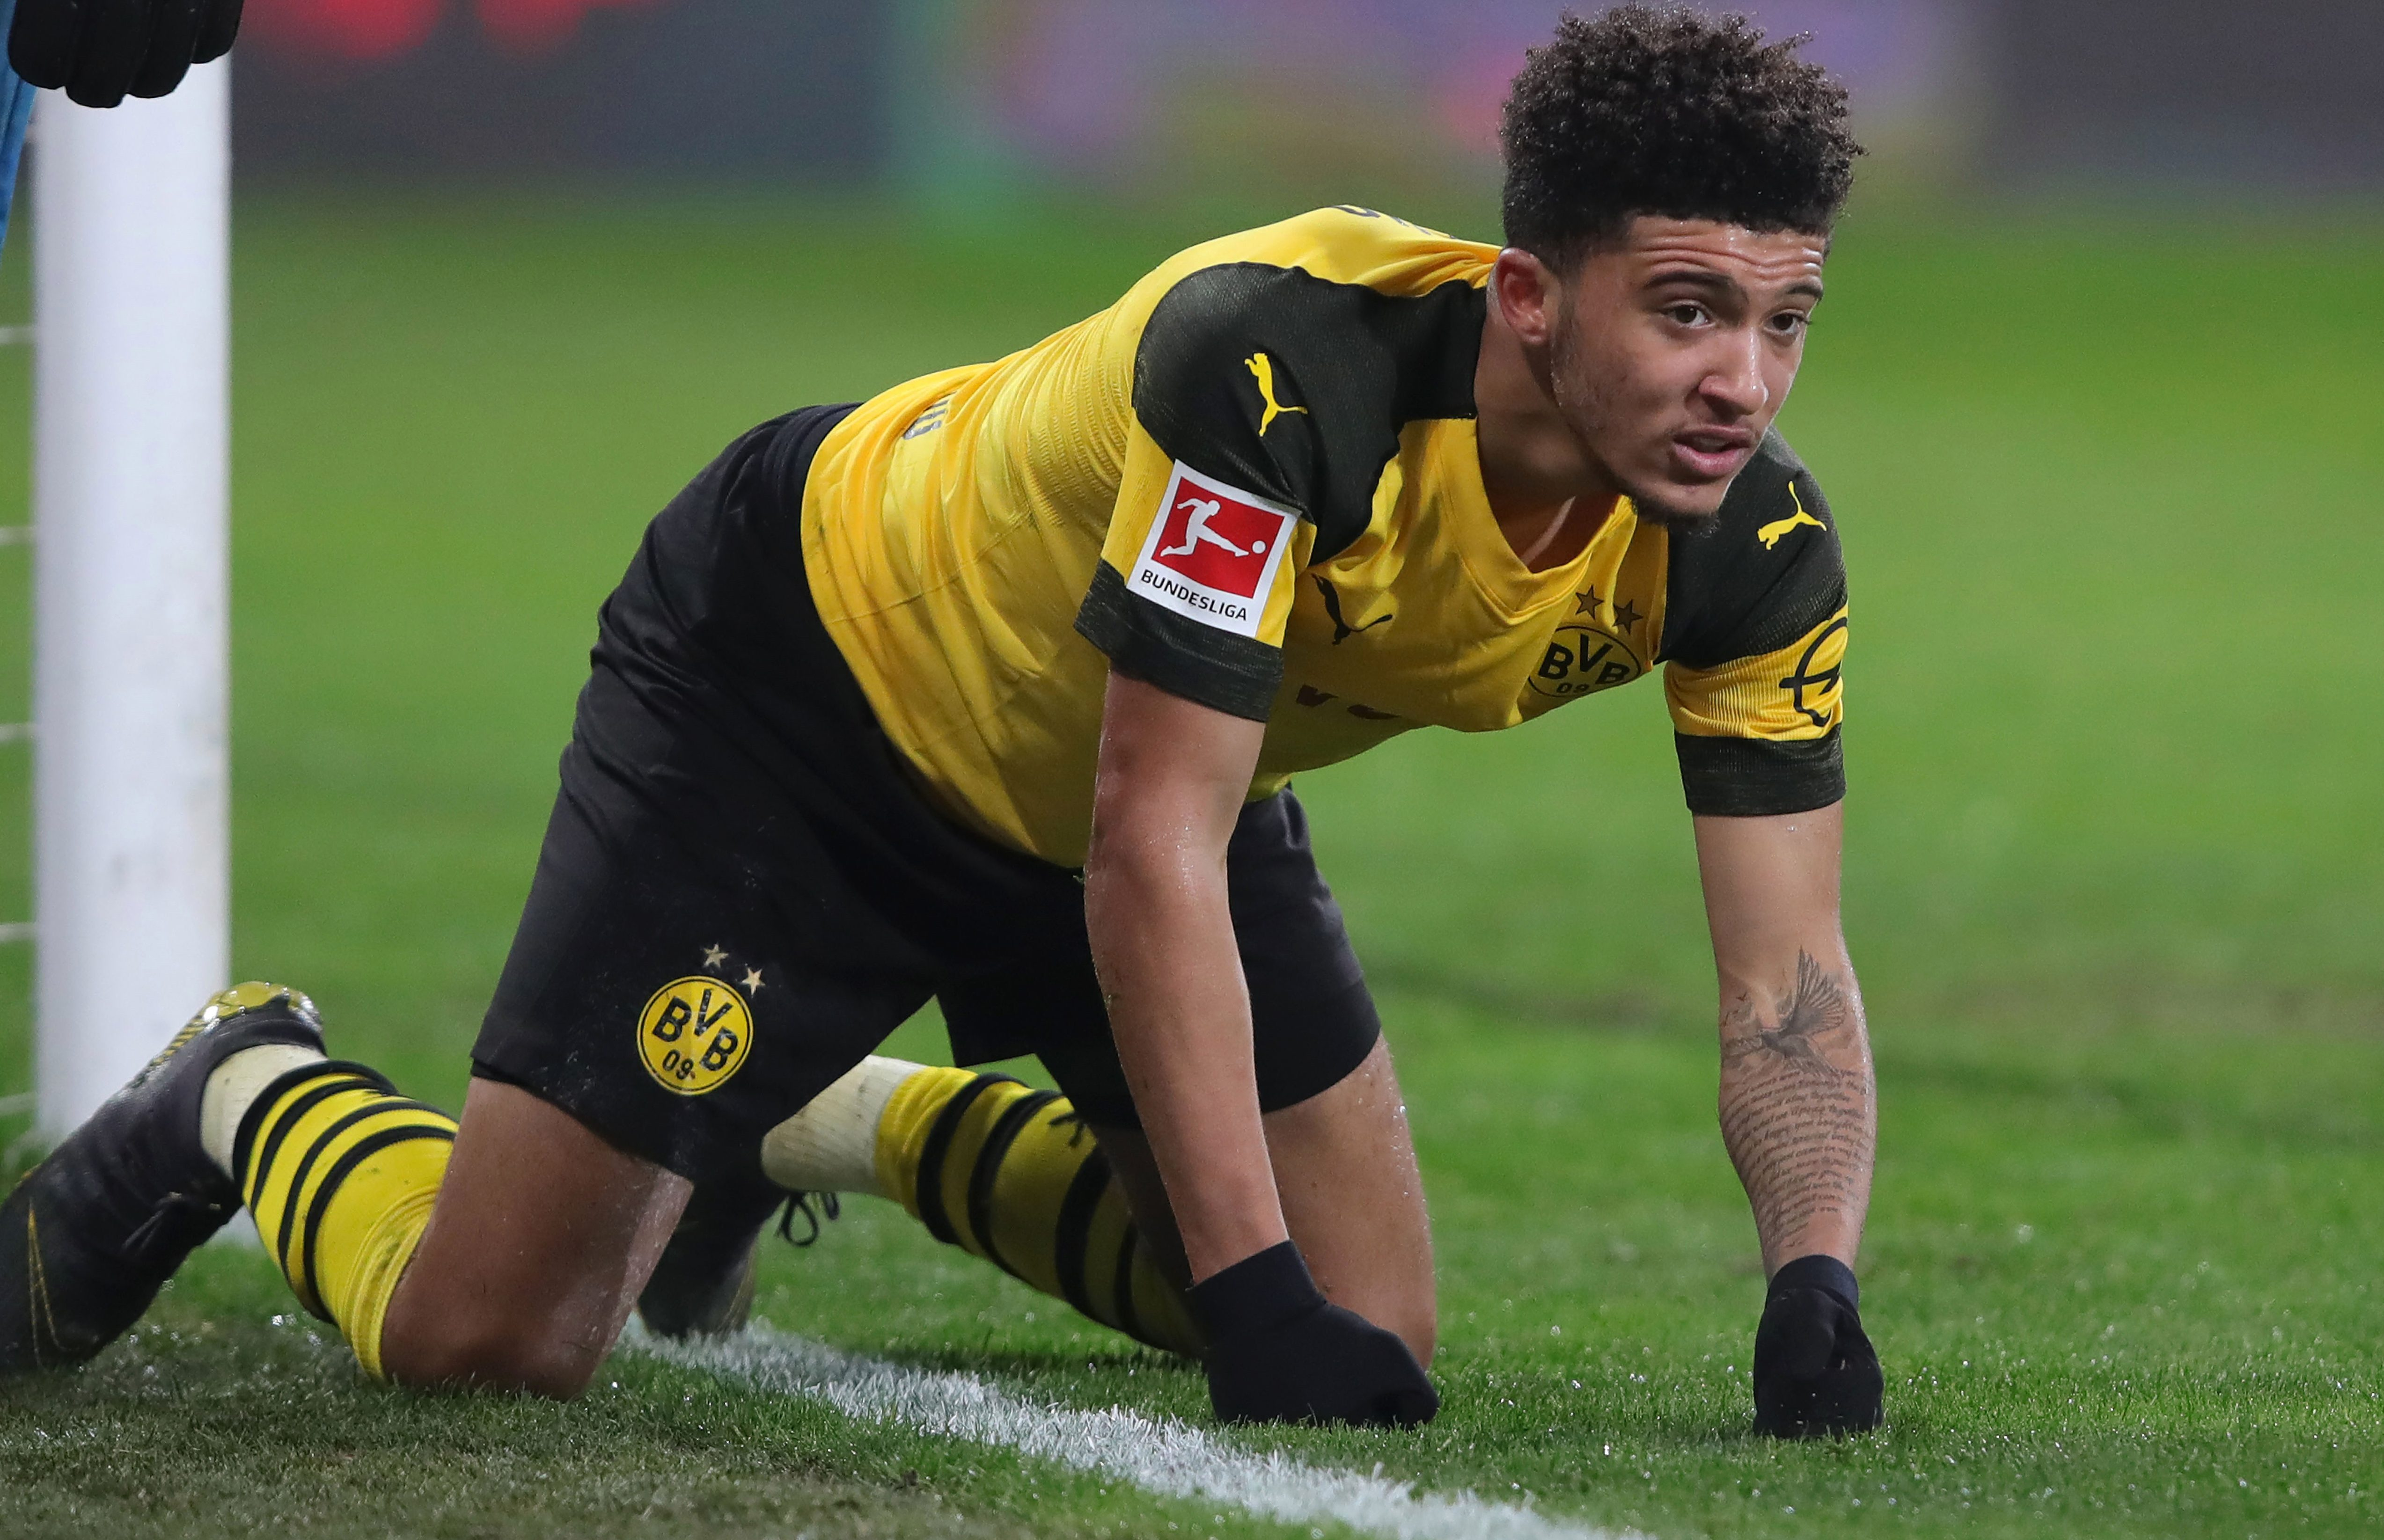 Sancho has emerged as Dortmund's best attacking player